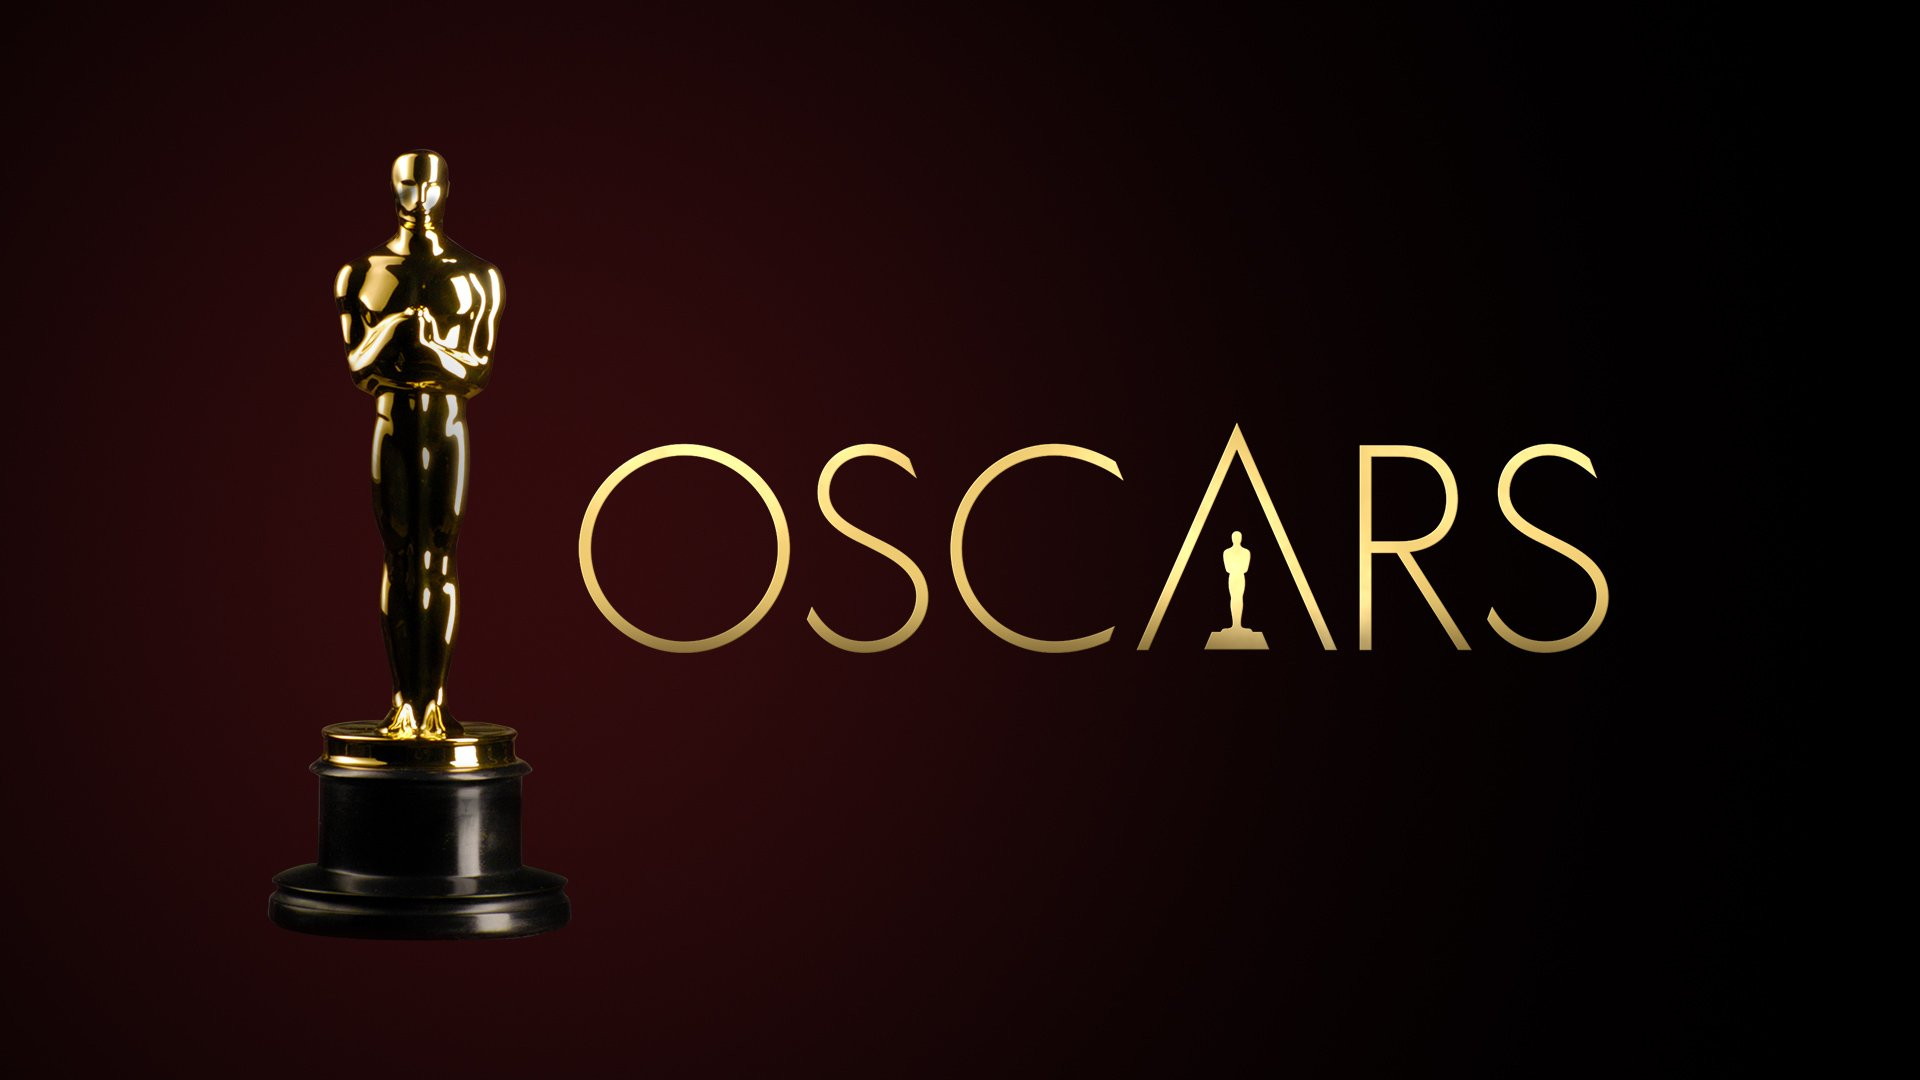 academy award winners in video games oscars 2020